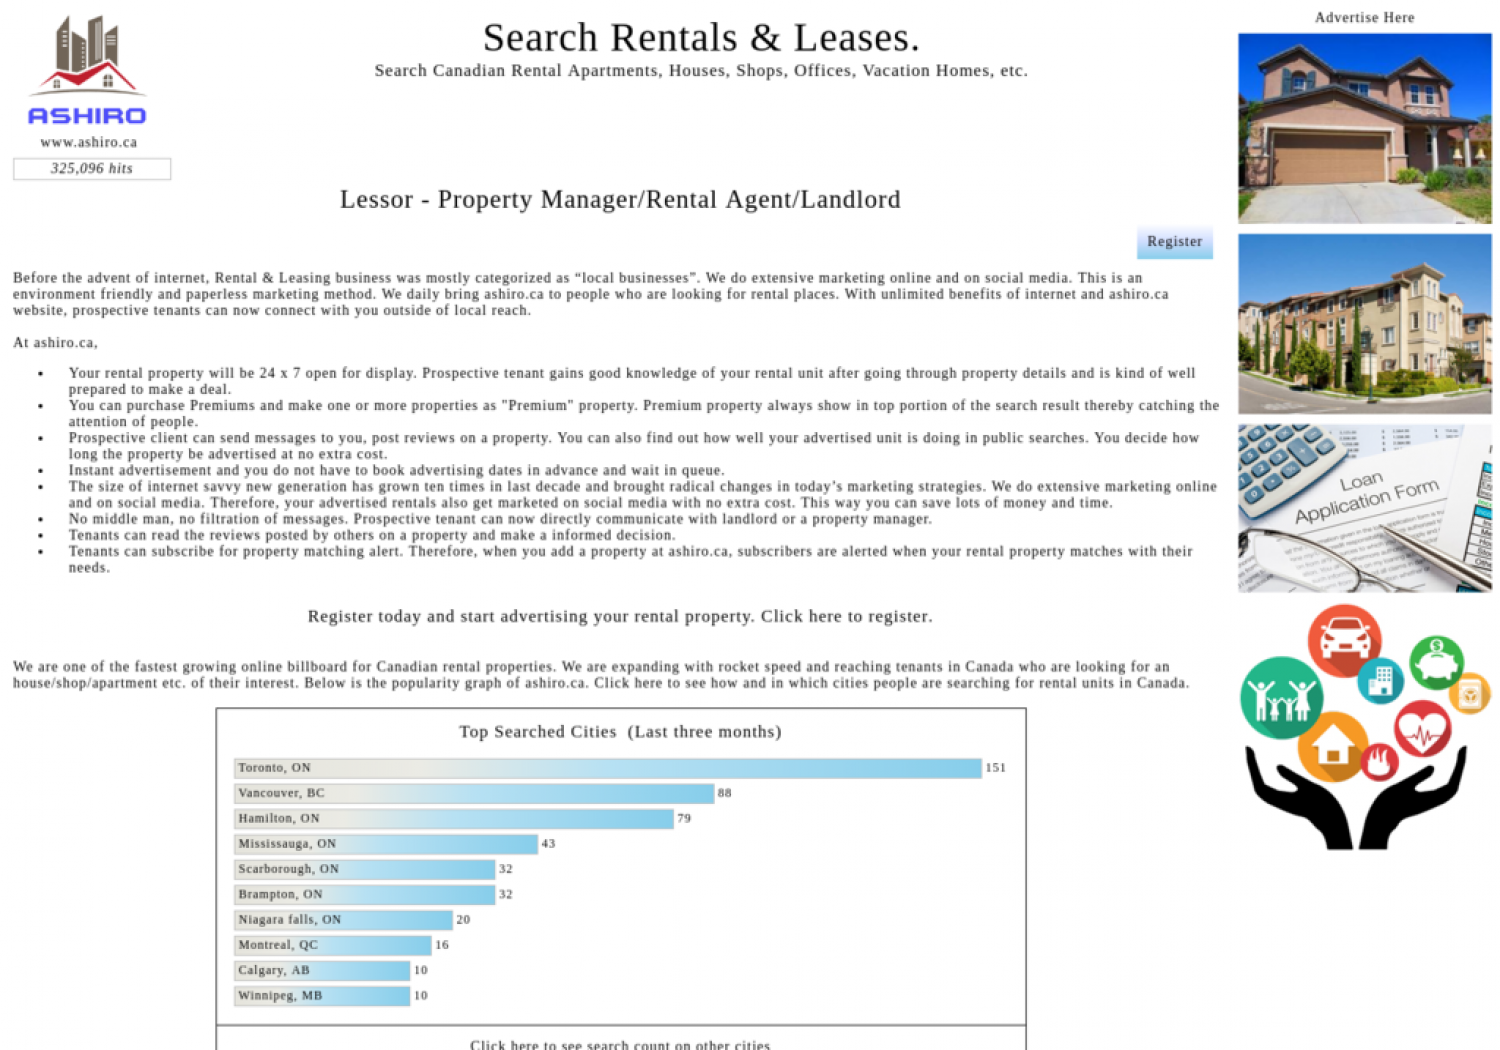 Lessor - Property Manager/Rental Agent/Landlord - ashiro.ca Infographic